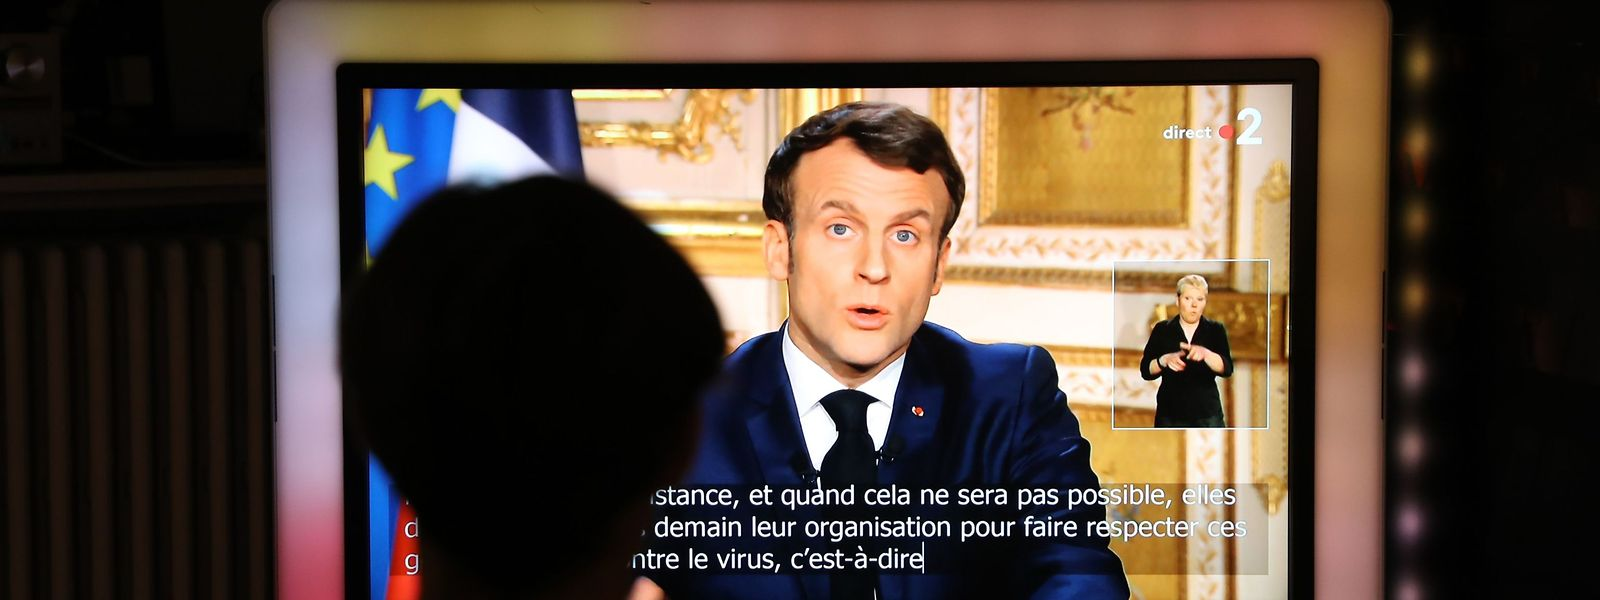 French President Emmanuel Macron is seen on a television screen as he speaks during a televised address to the nation on the outbreak of COVID-19, caused by the novel coronavirus, on March 16, 2020, in Paris. - The French president addresses the nation, with many expecting him to unveil more strict home confinement rules in a bid to prevent the virus from spreading. France has closed down all schools, theatres, cinemas and a range of shops, with only those selling food and other essential items allowed to remain open. The balance sheet of the epidemic climbed to 127 dead and 5,423 confirmed cases in France. (Photo by Ludovic Marin / AFP)